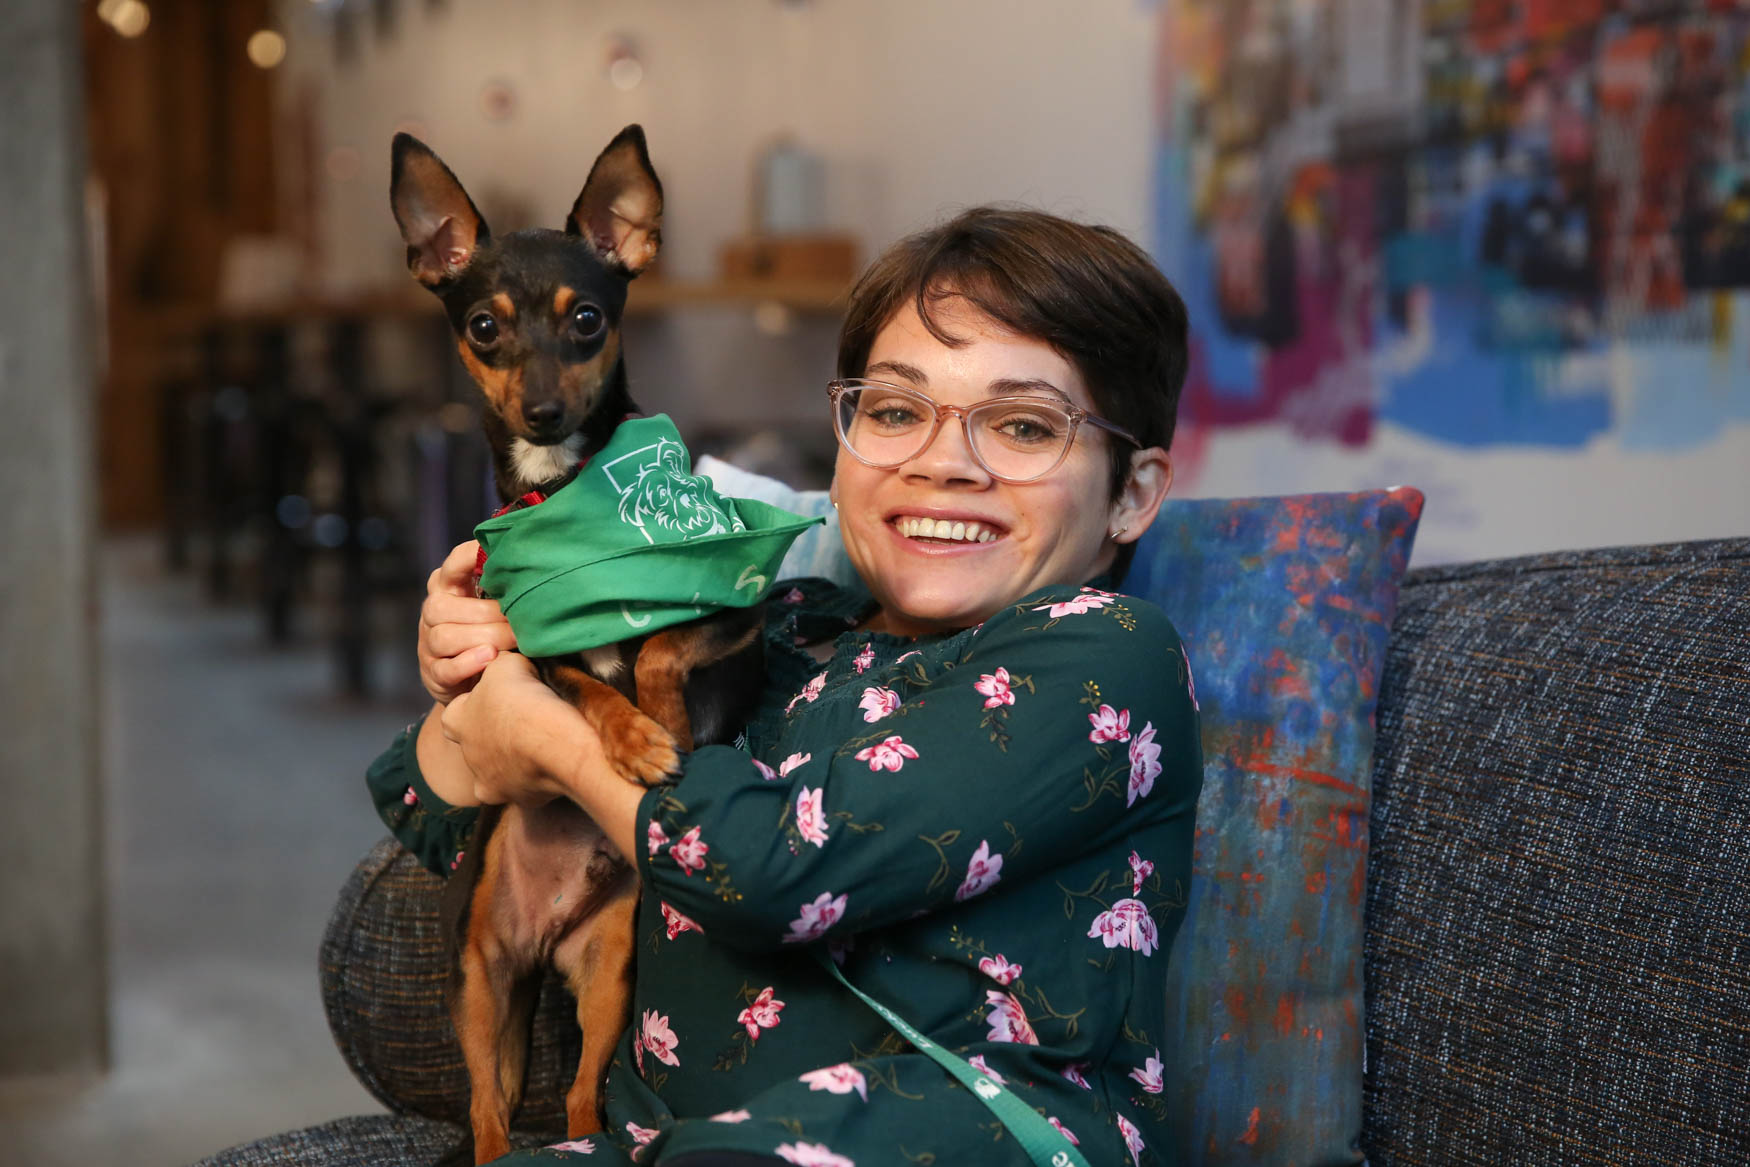 The good news is Sherman was ADOPTED right after our shoot! Photo location: Moxy Washington, D.C. Downtown (Image: Amanda Andrade-Rhoades/ DC Refined)